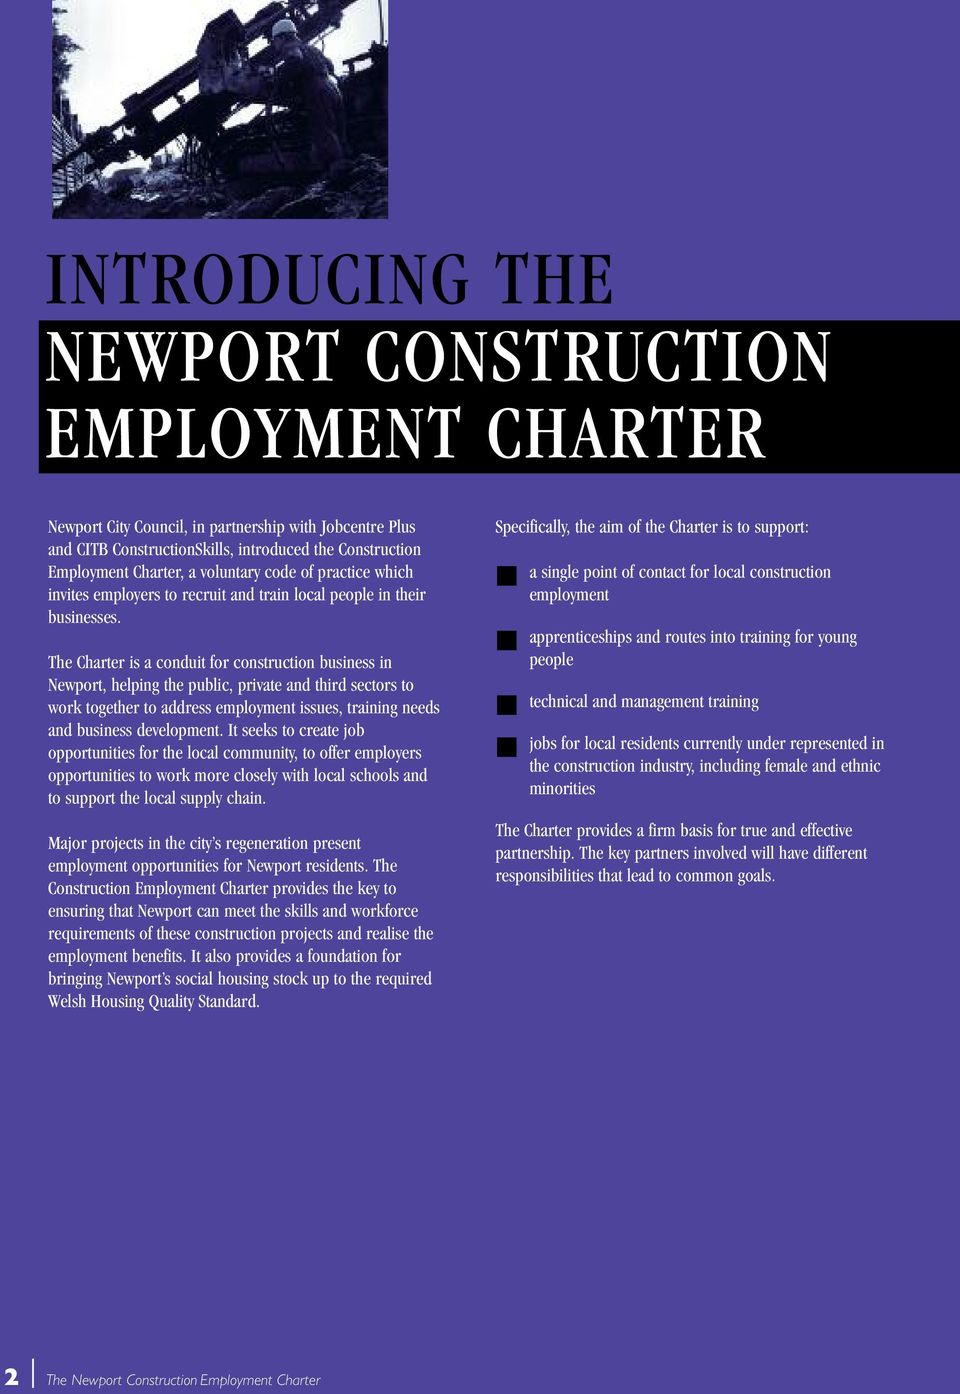 The Charter is a conduit for construction business in Newport, helping the public, private and third sectors to work together to address employment issues, training needs and business development.